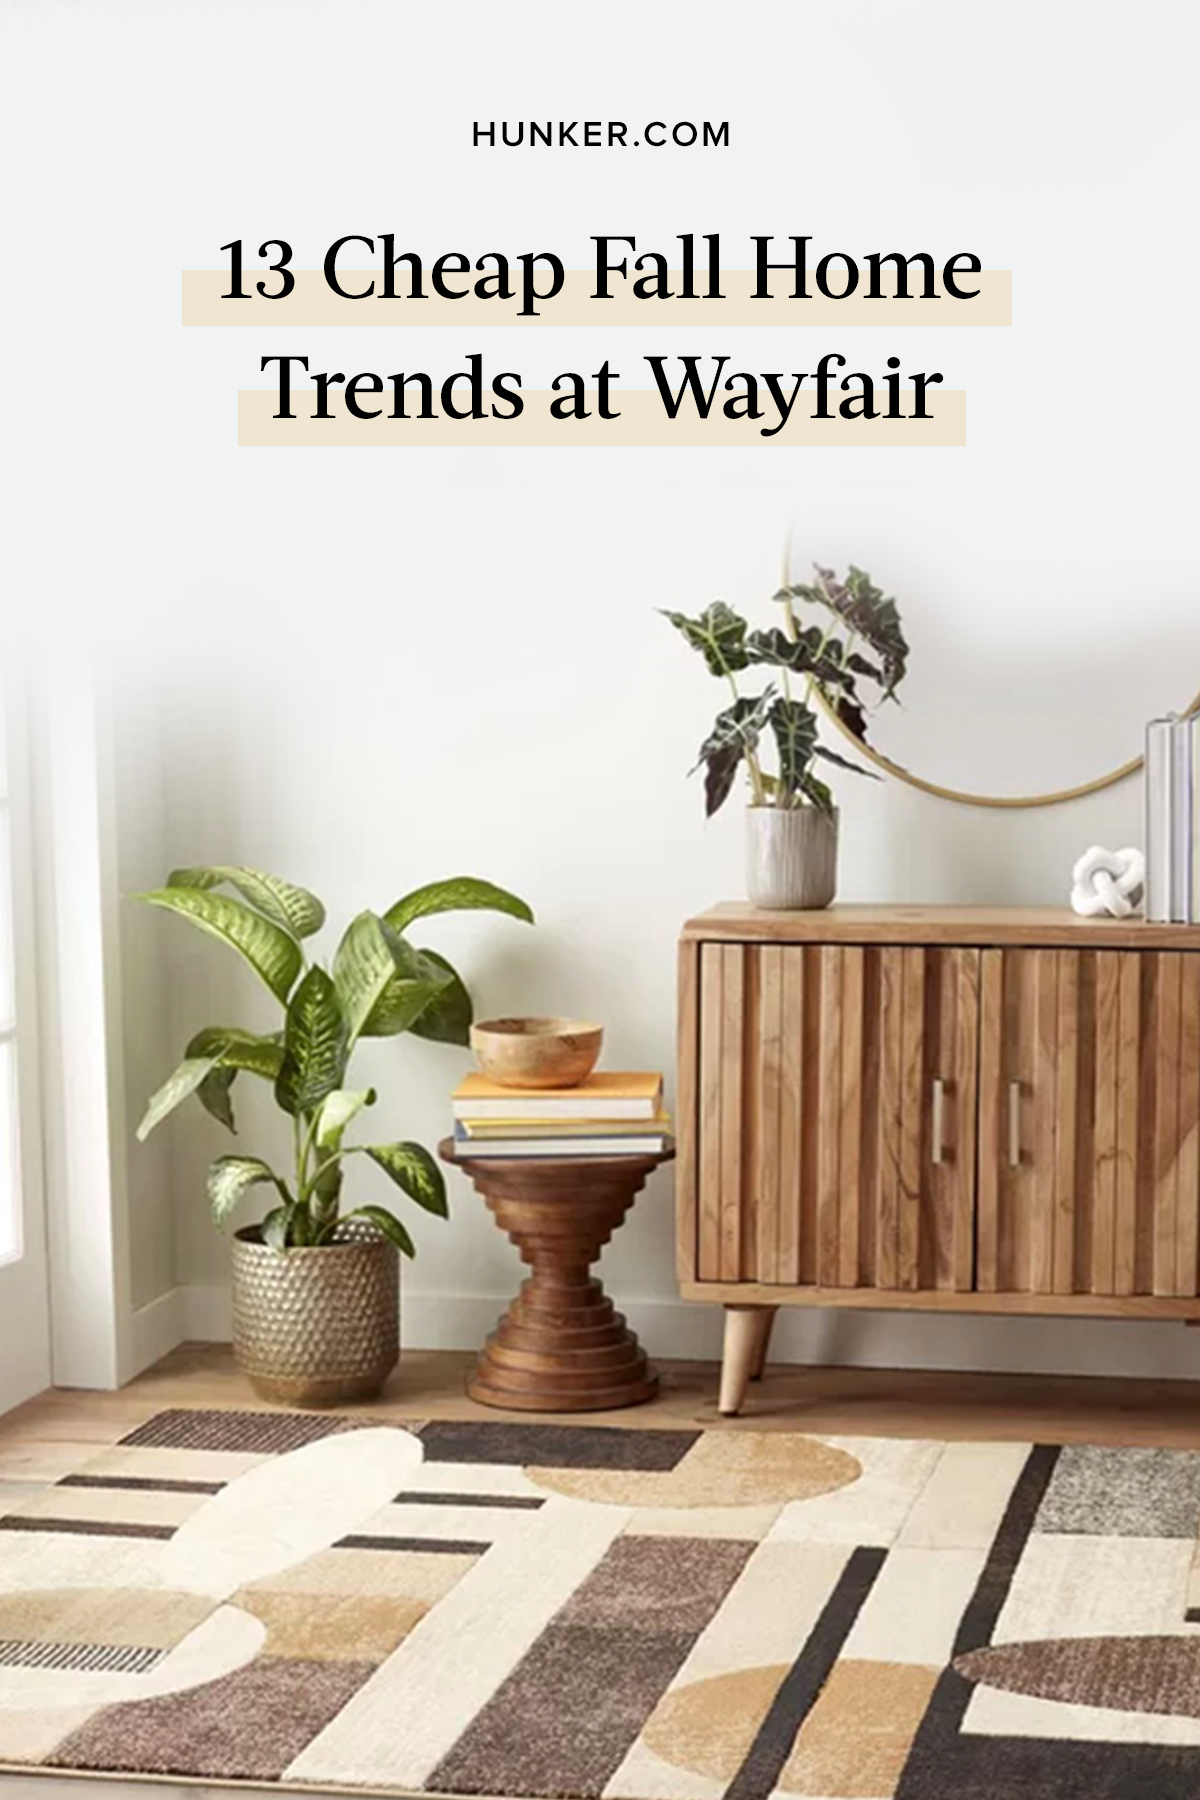 13 Fall Home Trends You Can Score For Cheap At Wayfair Hunker Home Trends Autumn Home Trendy Home Decor